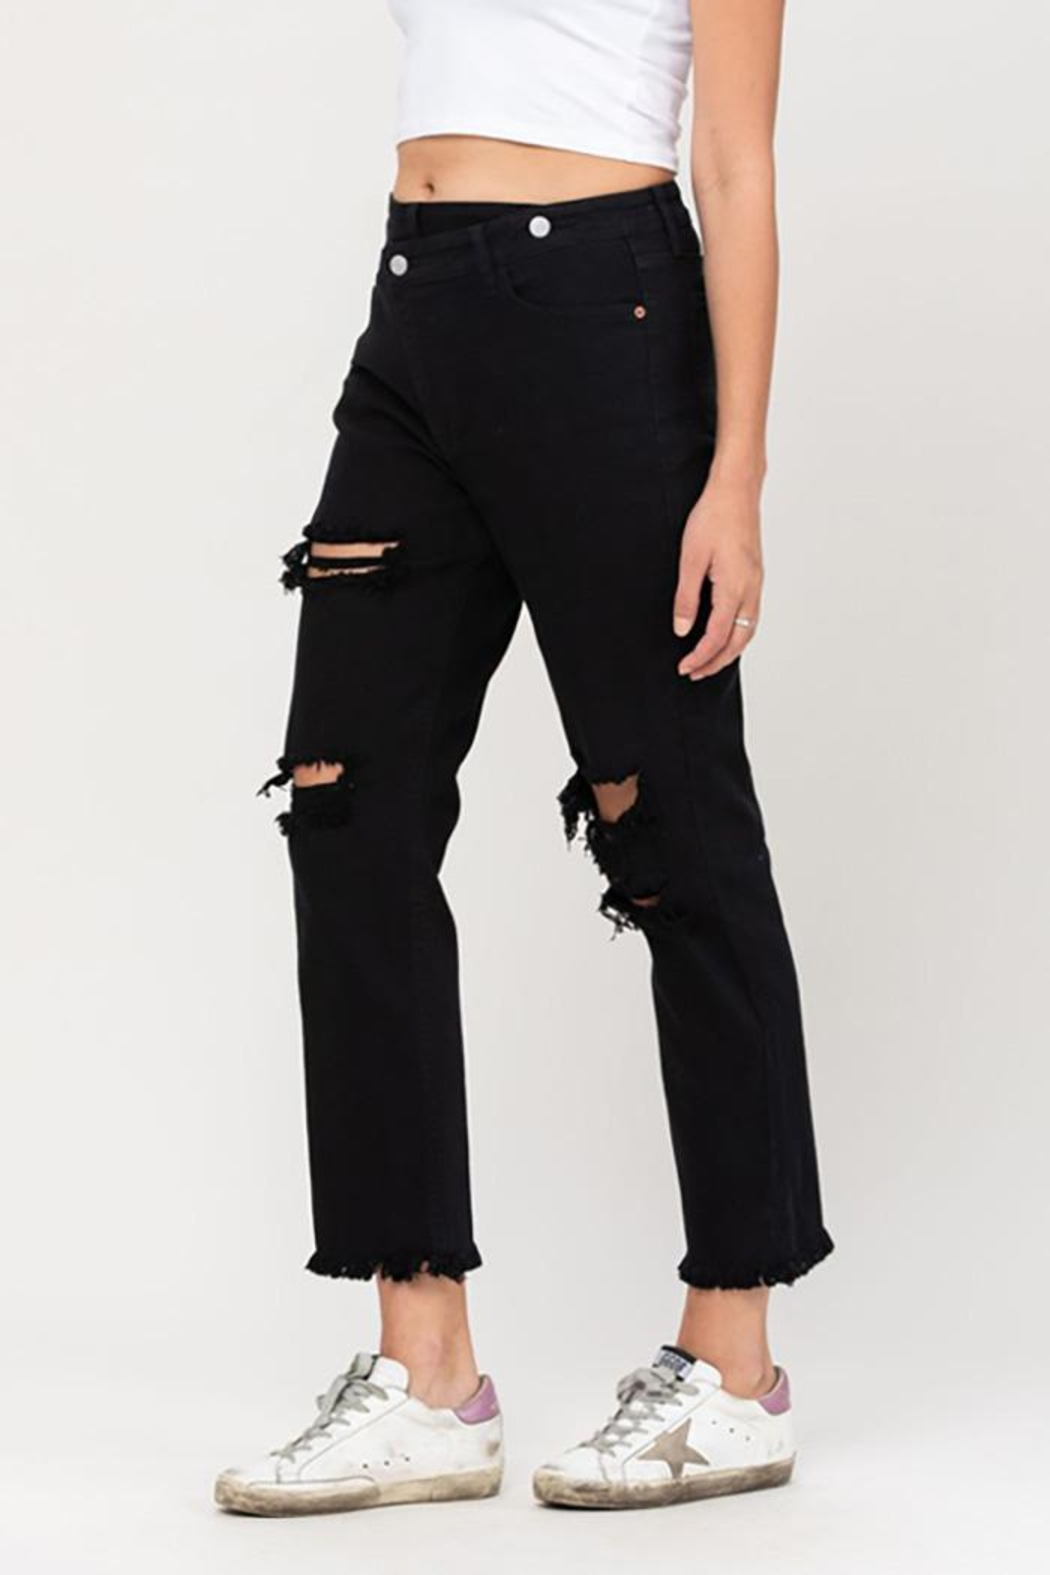 Cello Jeans High Rise Crossover Destroyed Straight Jeans - Back Cropped Image